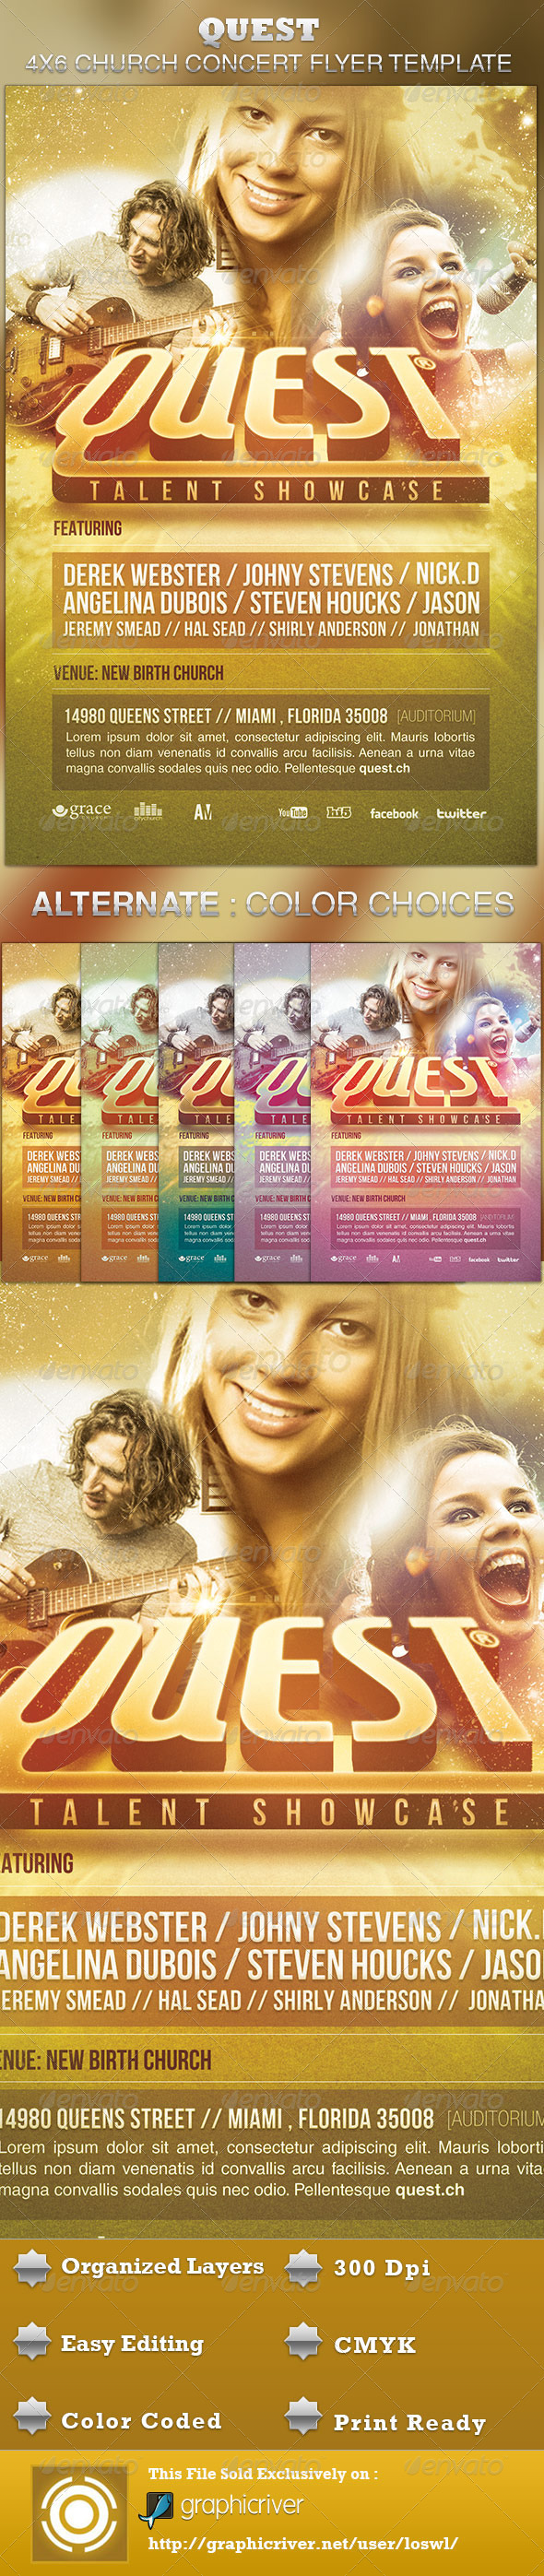 Quest Church Concert Flyer Template - Church Flyers